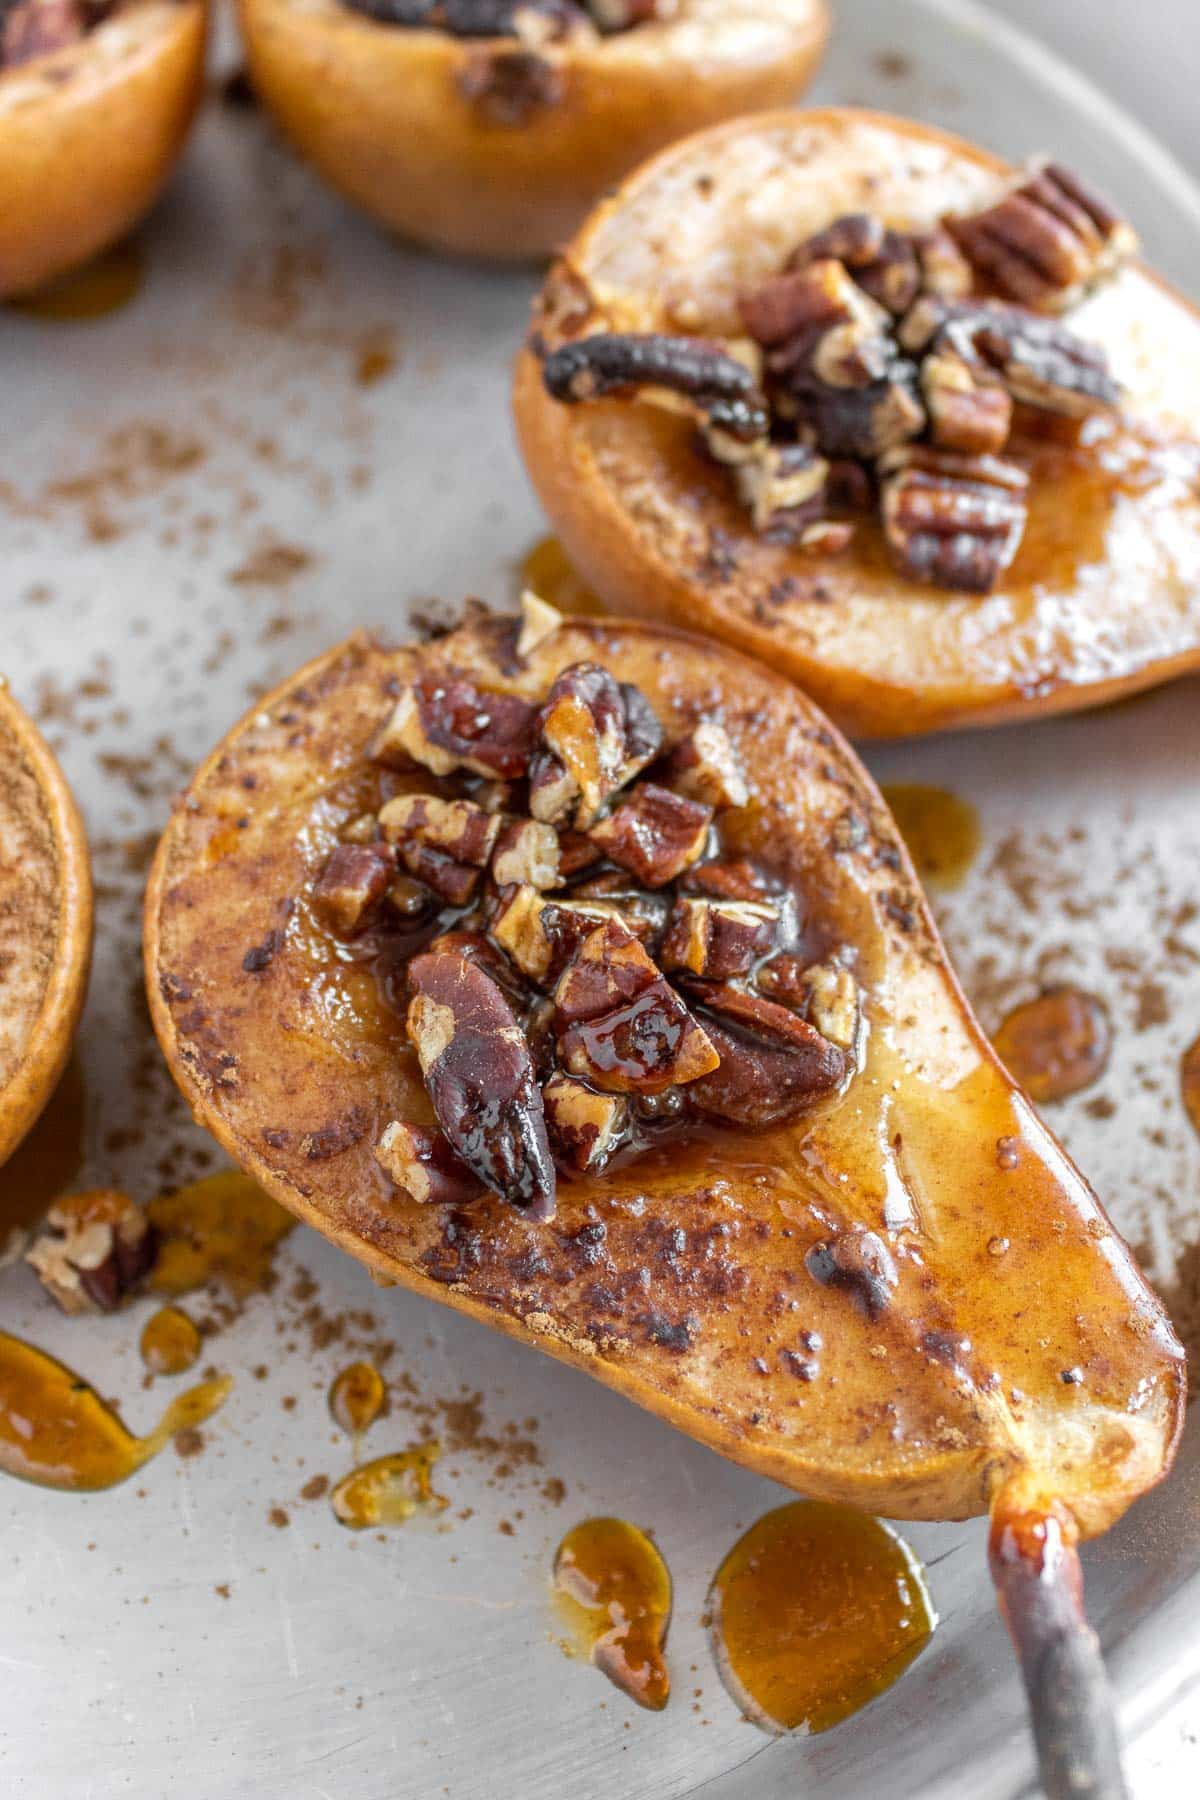 baked pears with cinnamon, maple syrup and pecan